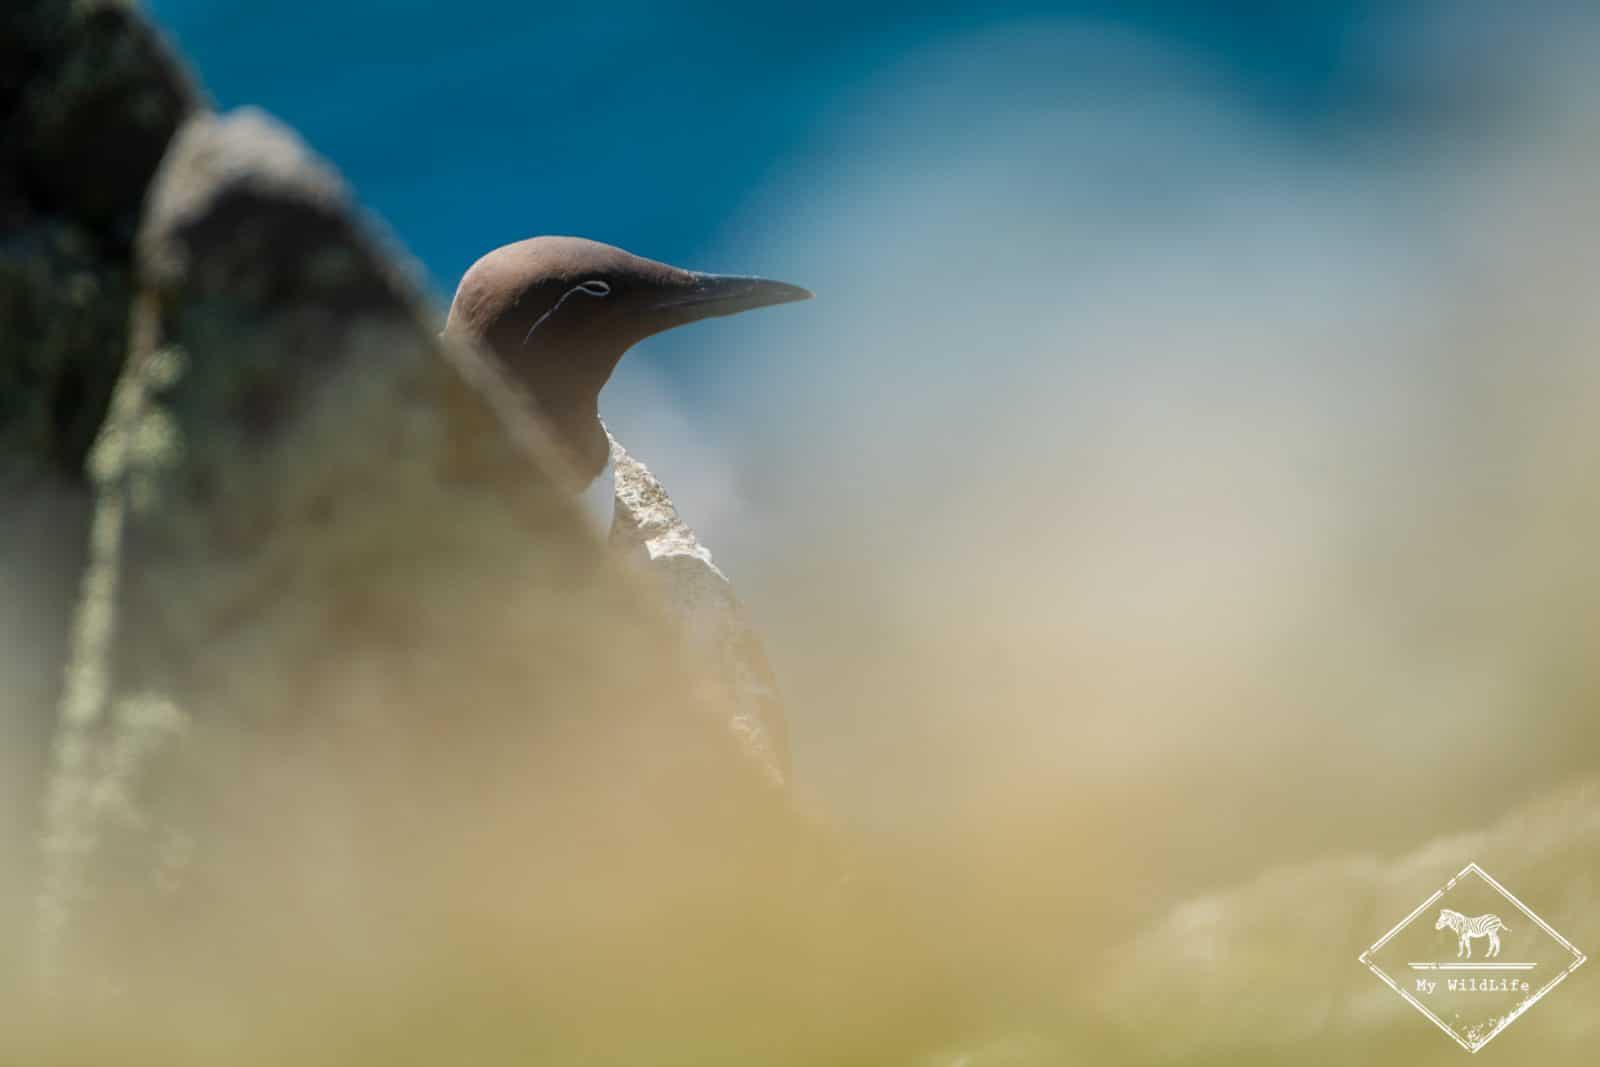 guillemot de troïl, île de May